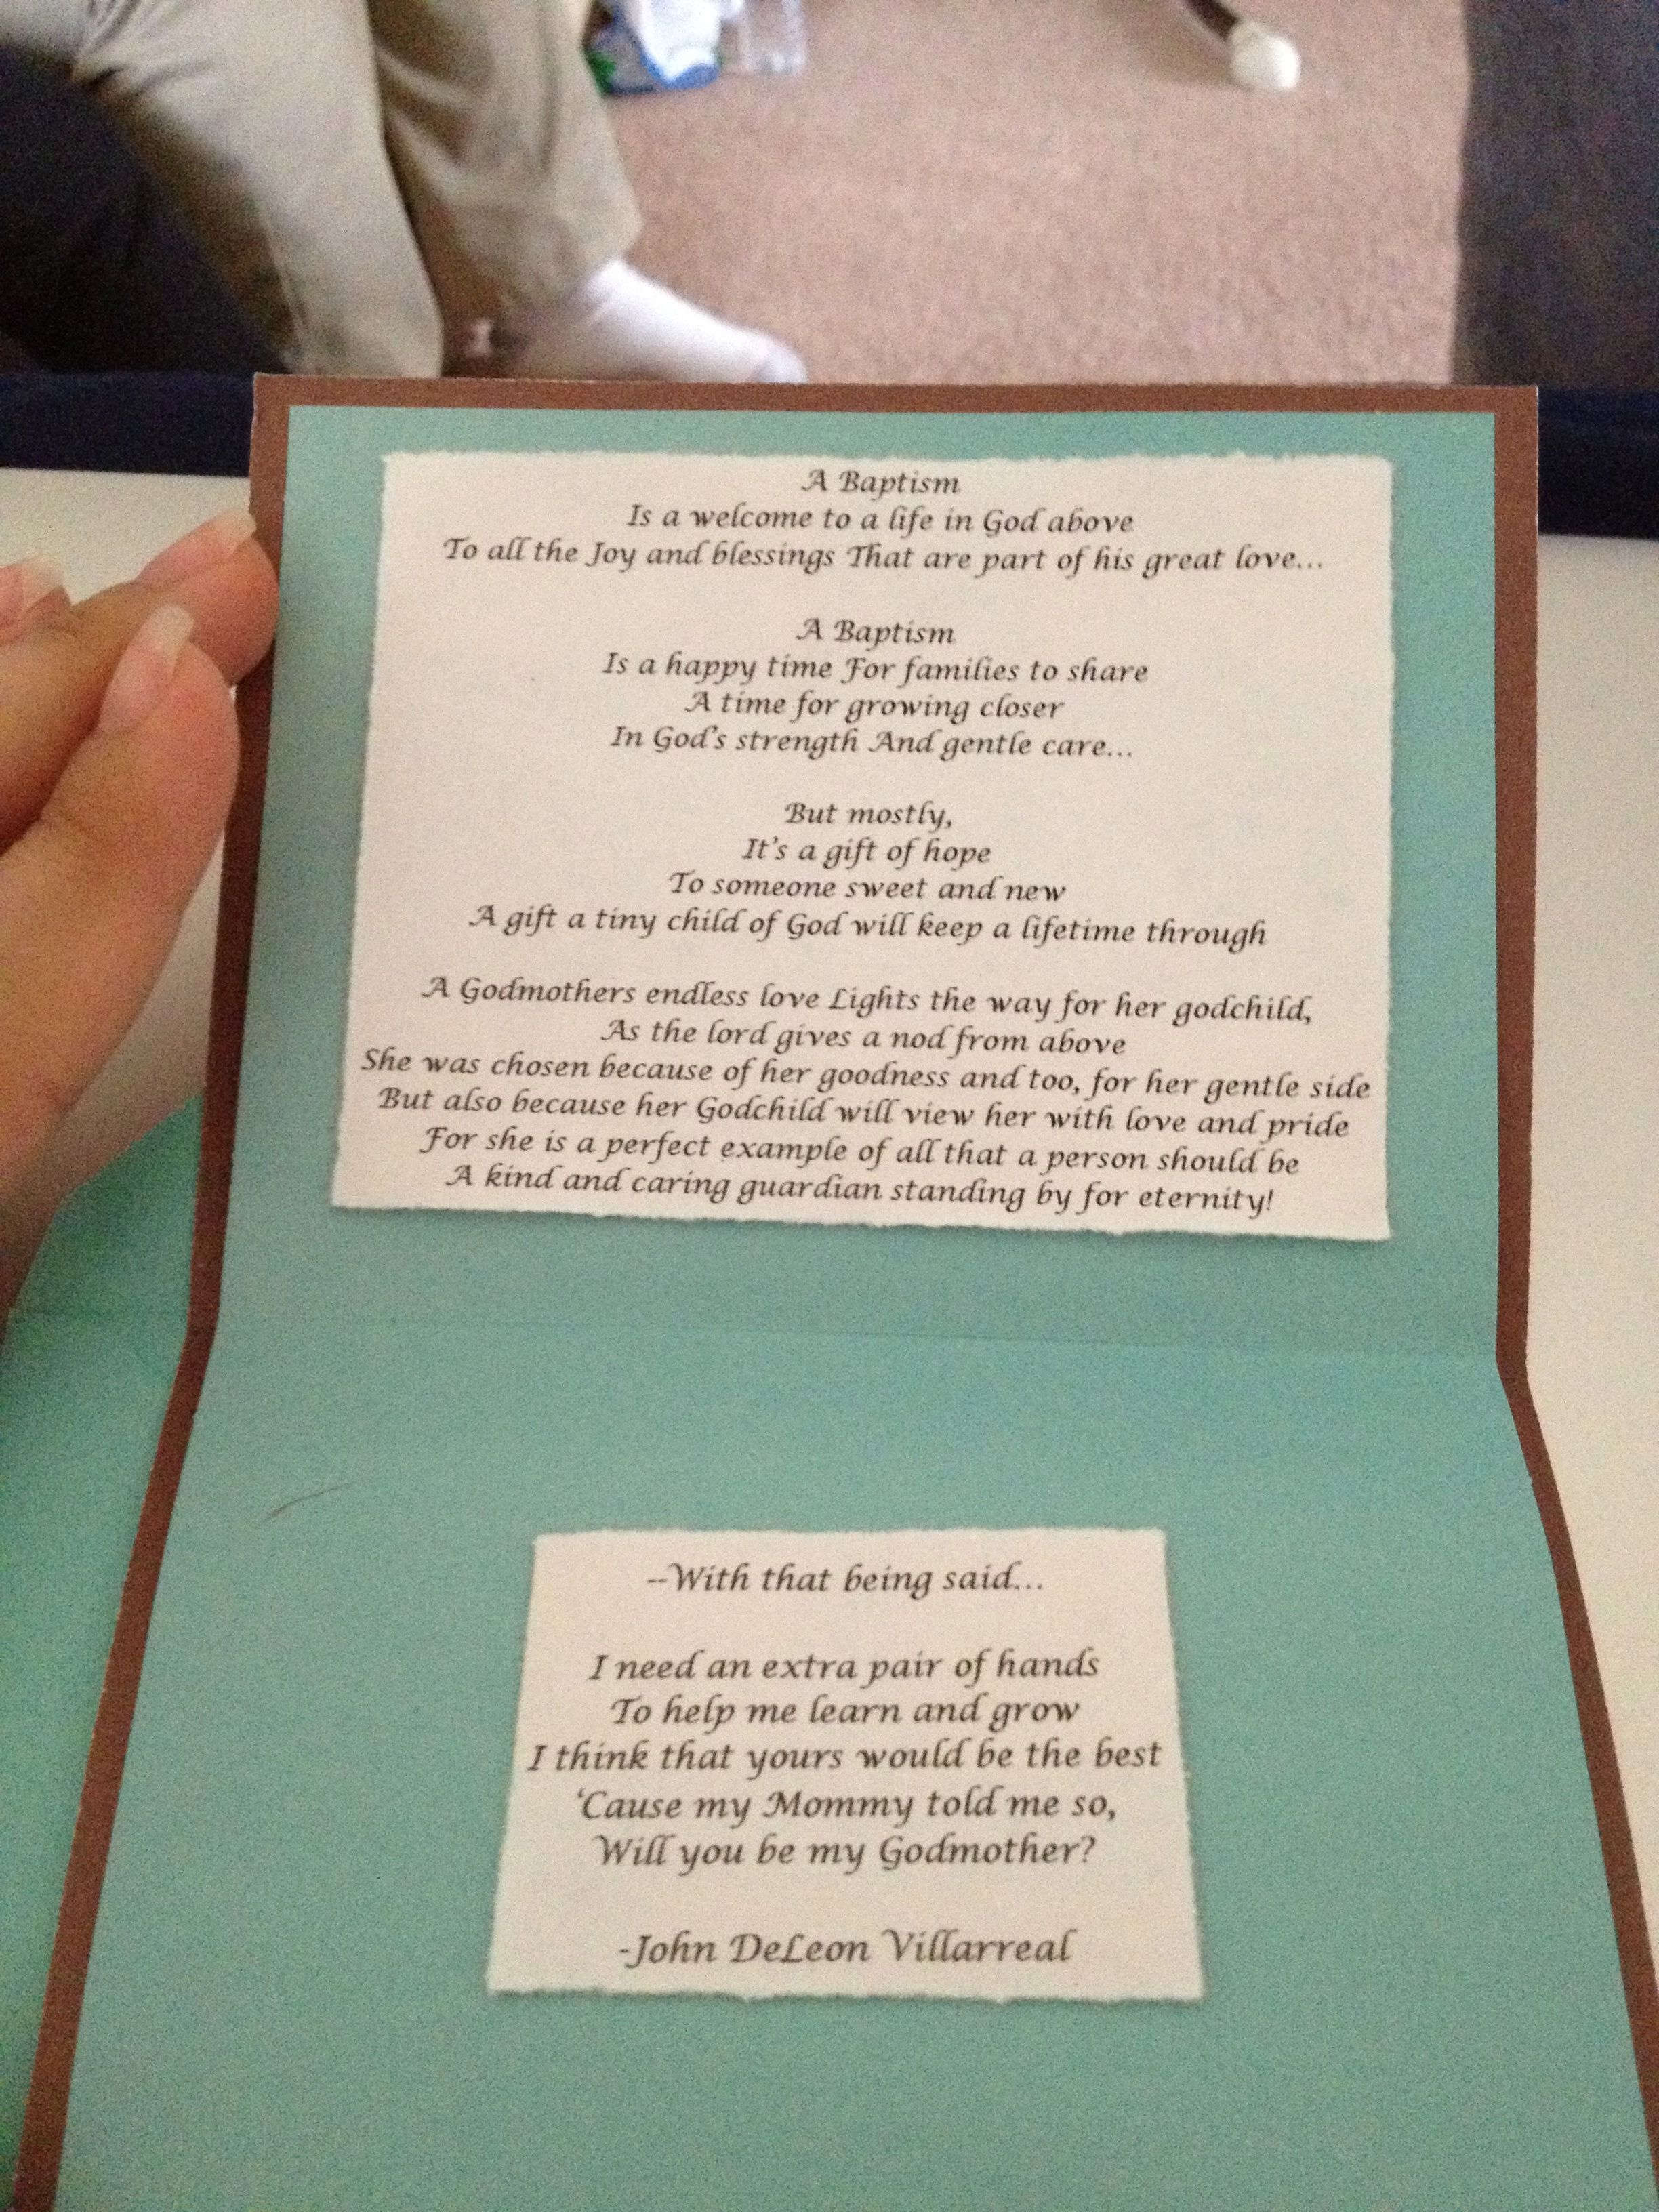 Godmother quotes funny quotesgram - How To Ask Someone To Be Godmother Homemade Card With Poem